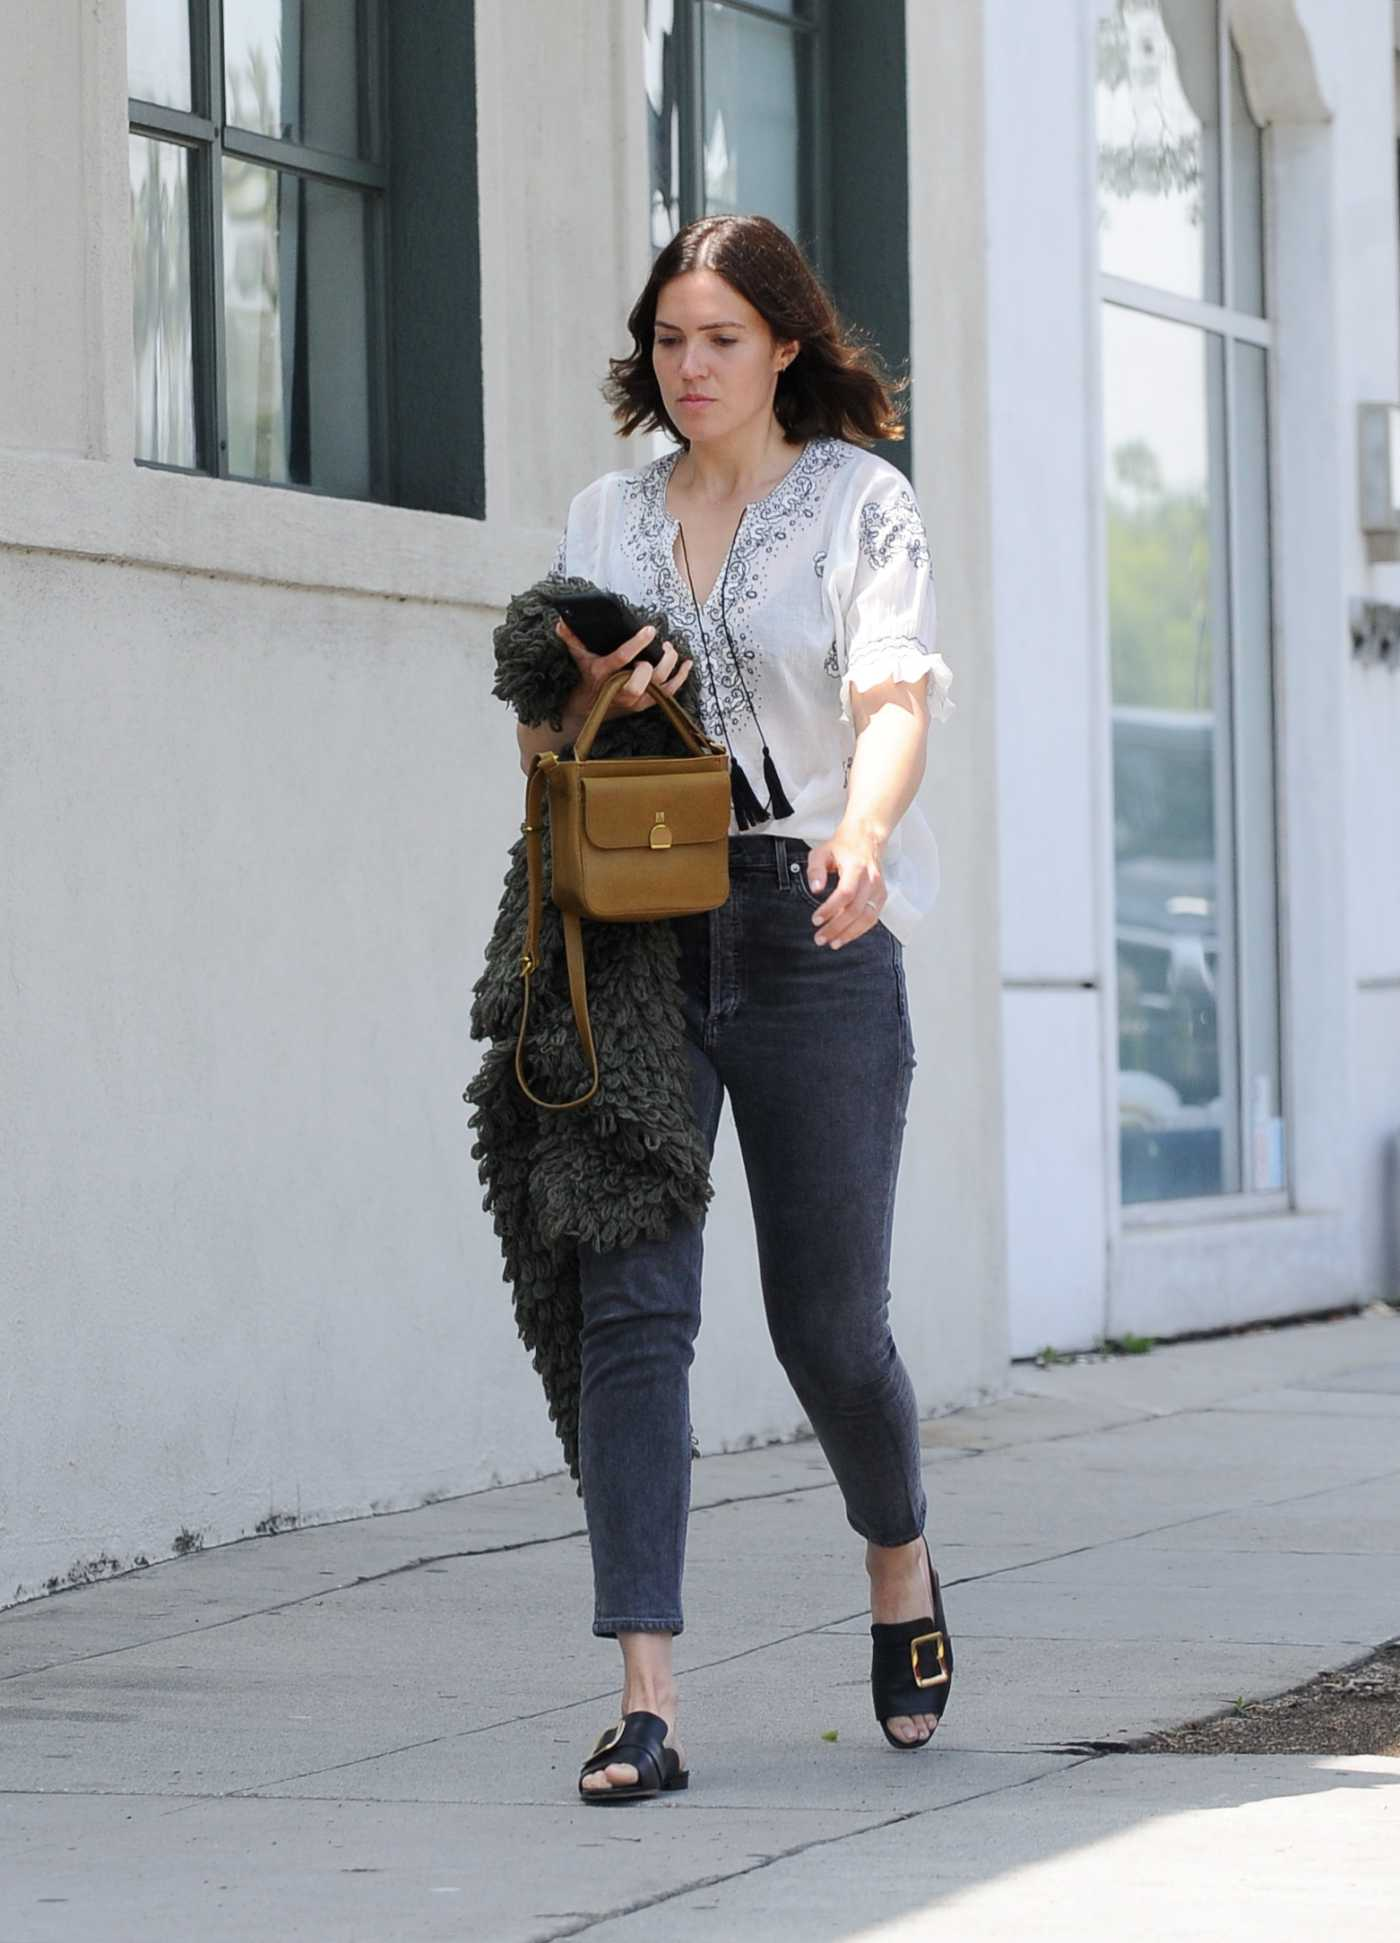 Mandy Moore in a White Blouse Was Seen Out in Los Angeles 06/01/2019